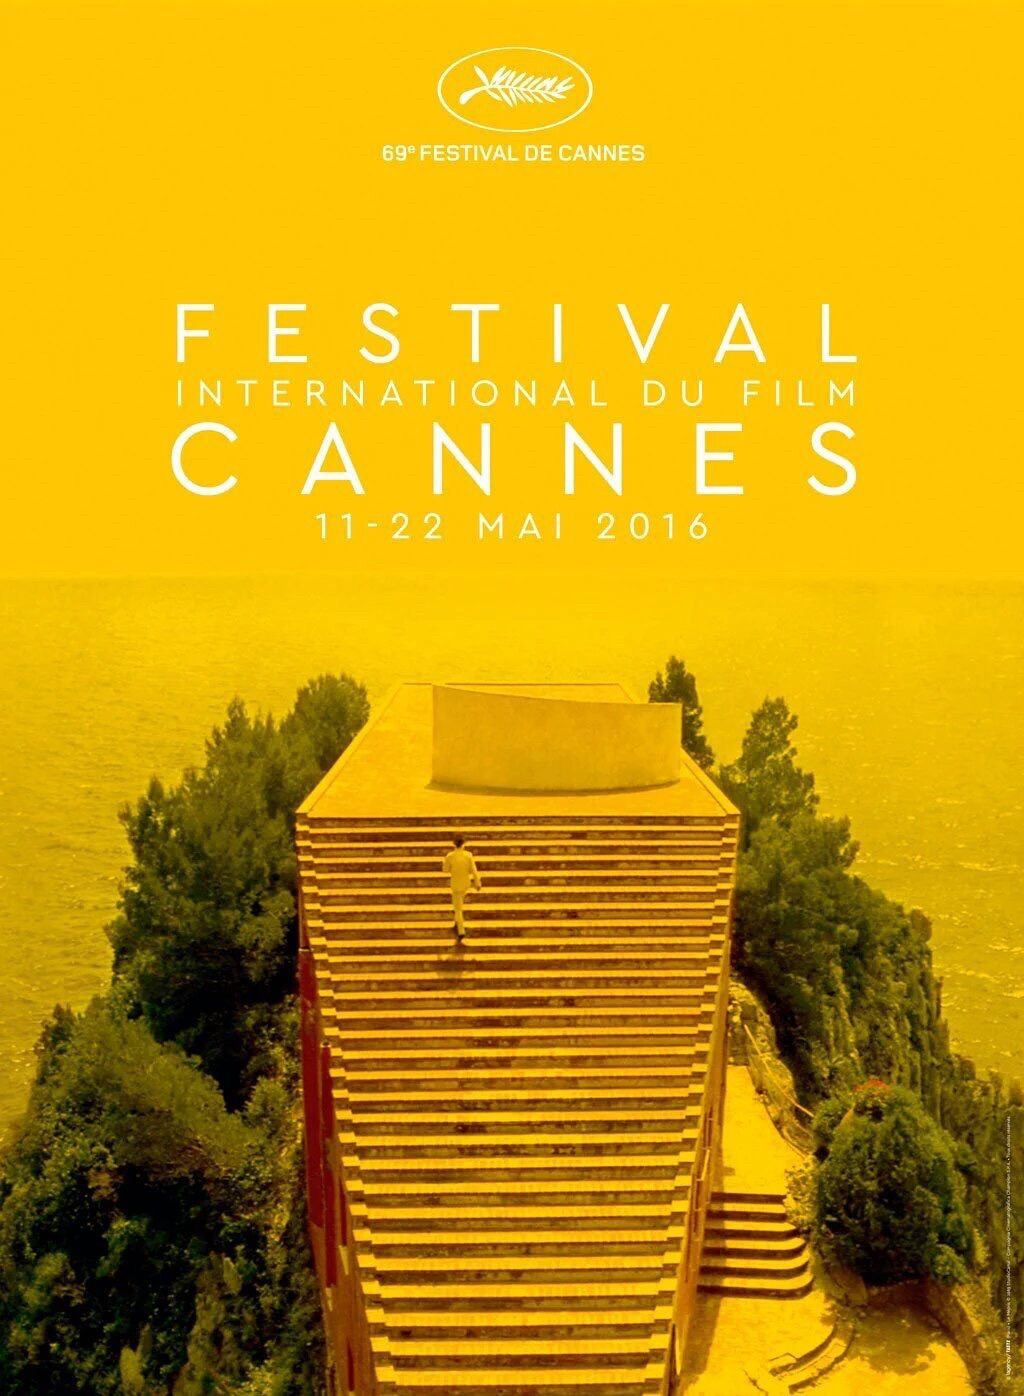 #Cannes2016 s'Affiche